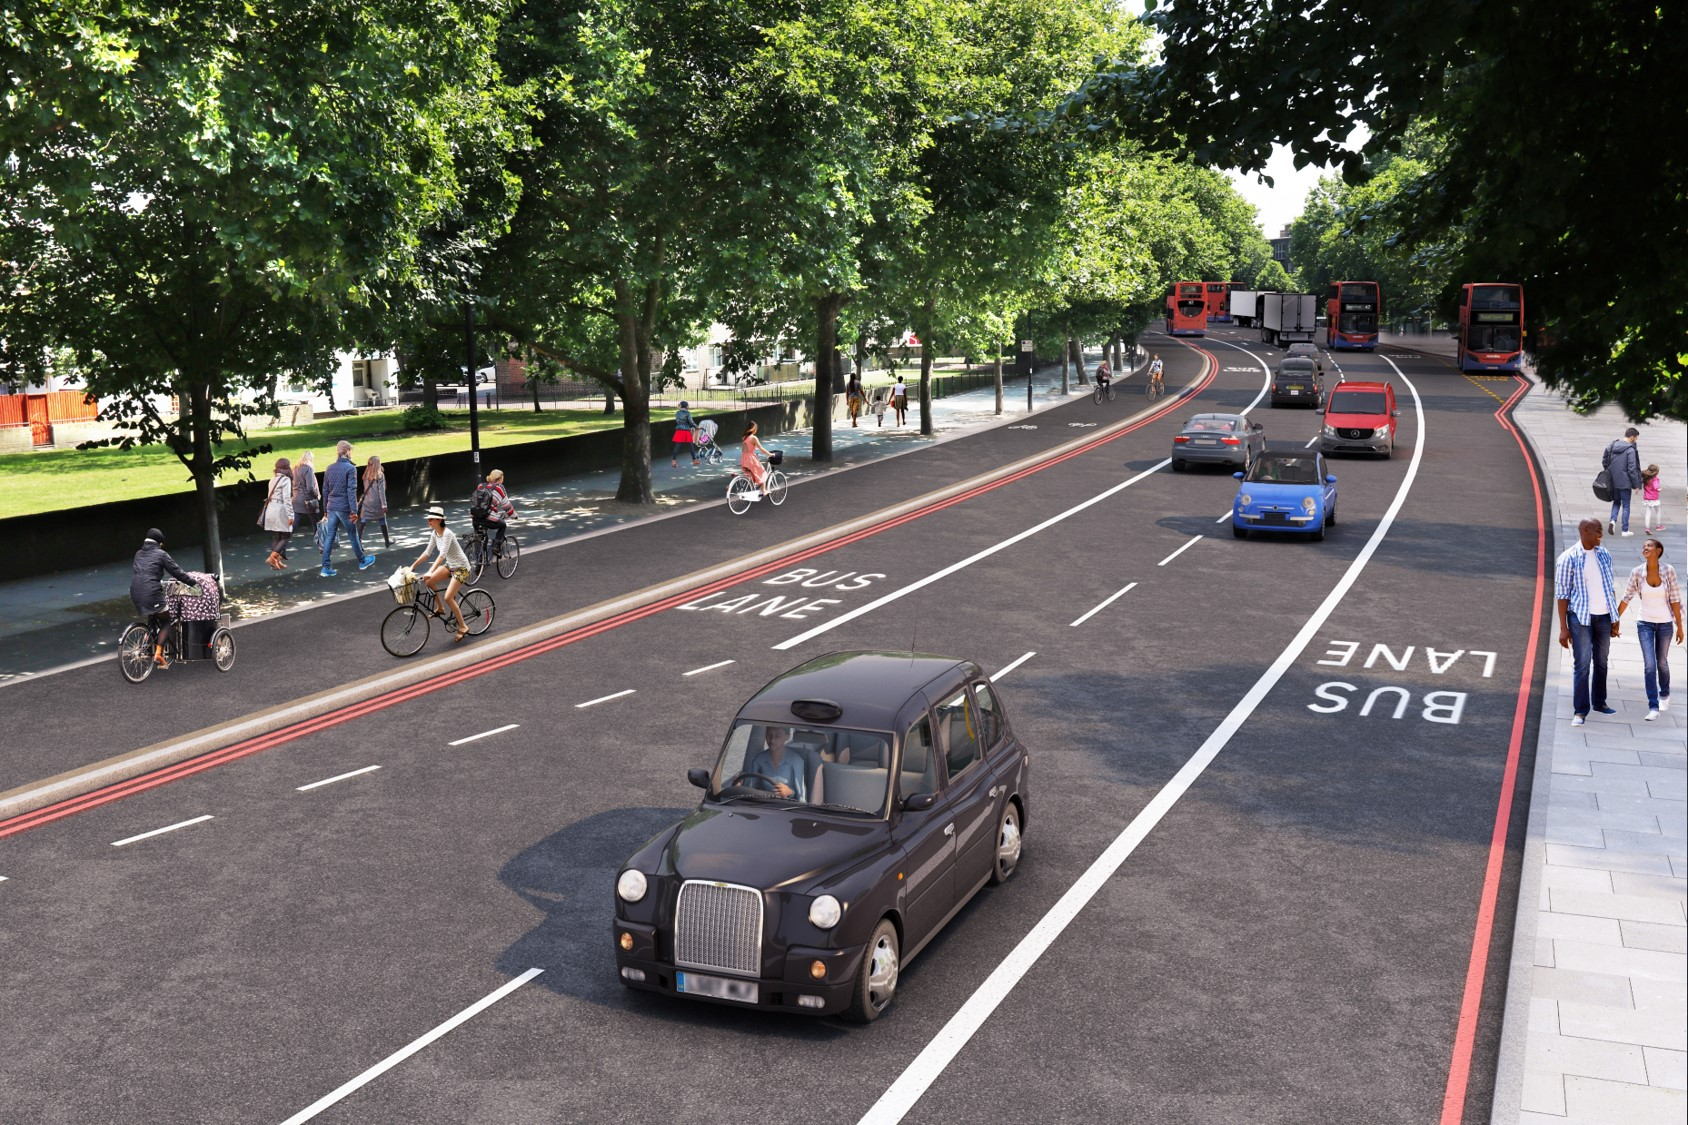 Cycle superhighway 4: bike tracks for Tooley Street & Jamaica Road